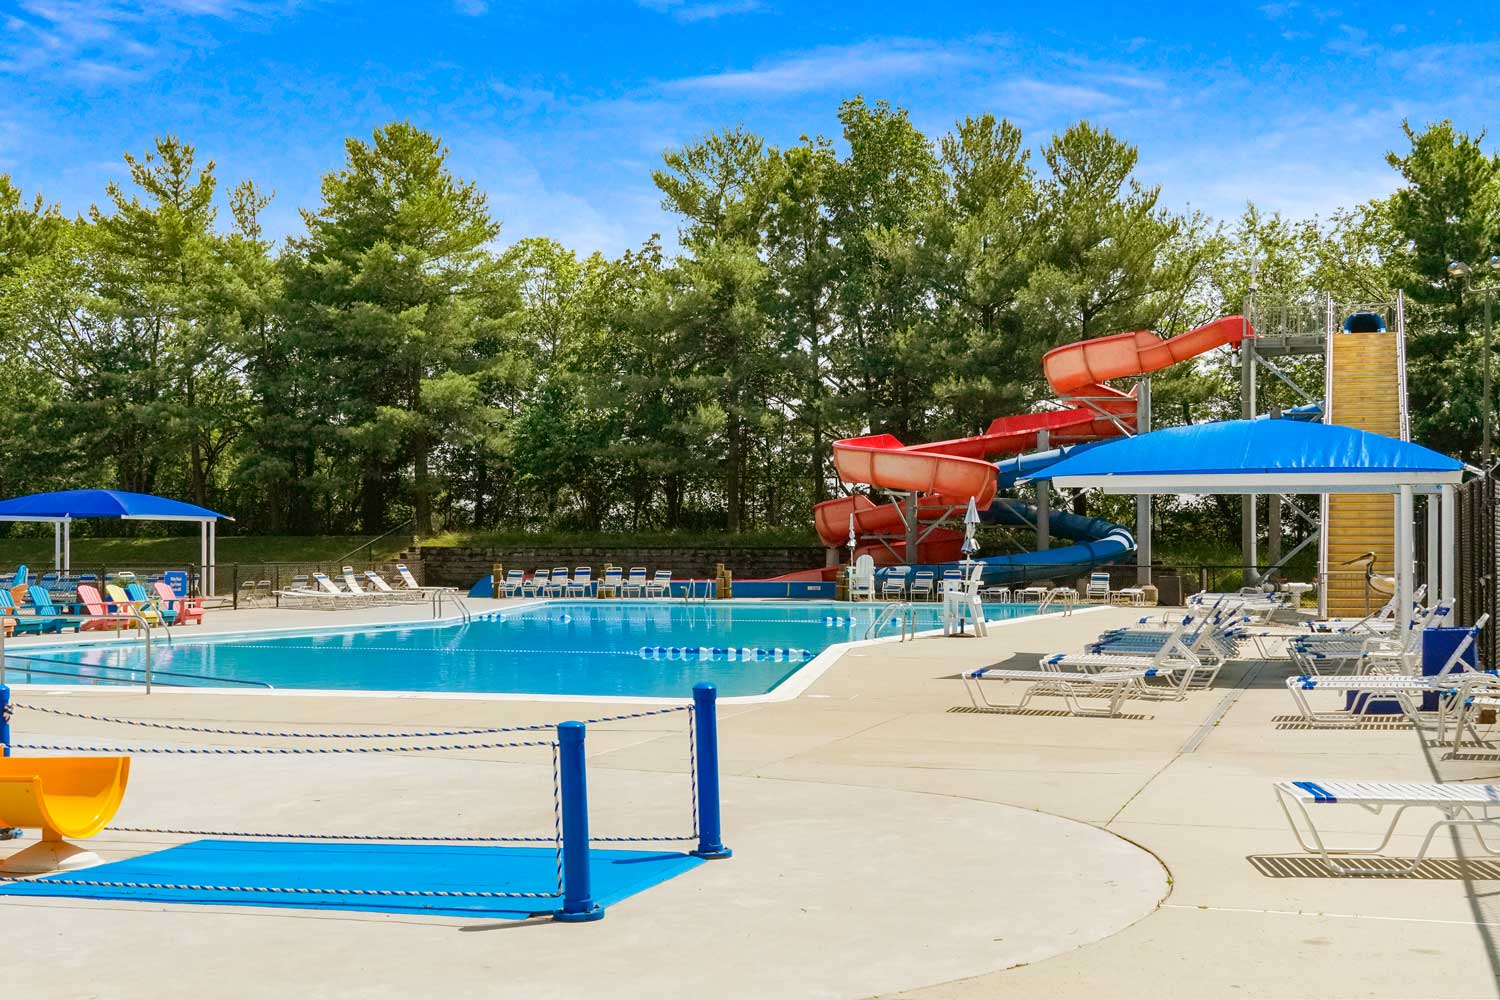 Ocean Dunes Waterpark is 10 minutes from Barcroft View Apartments